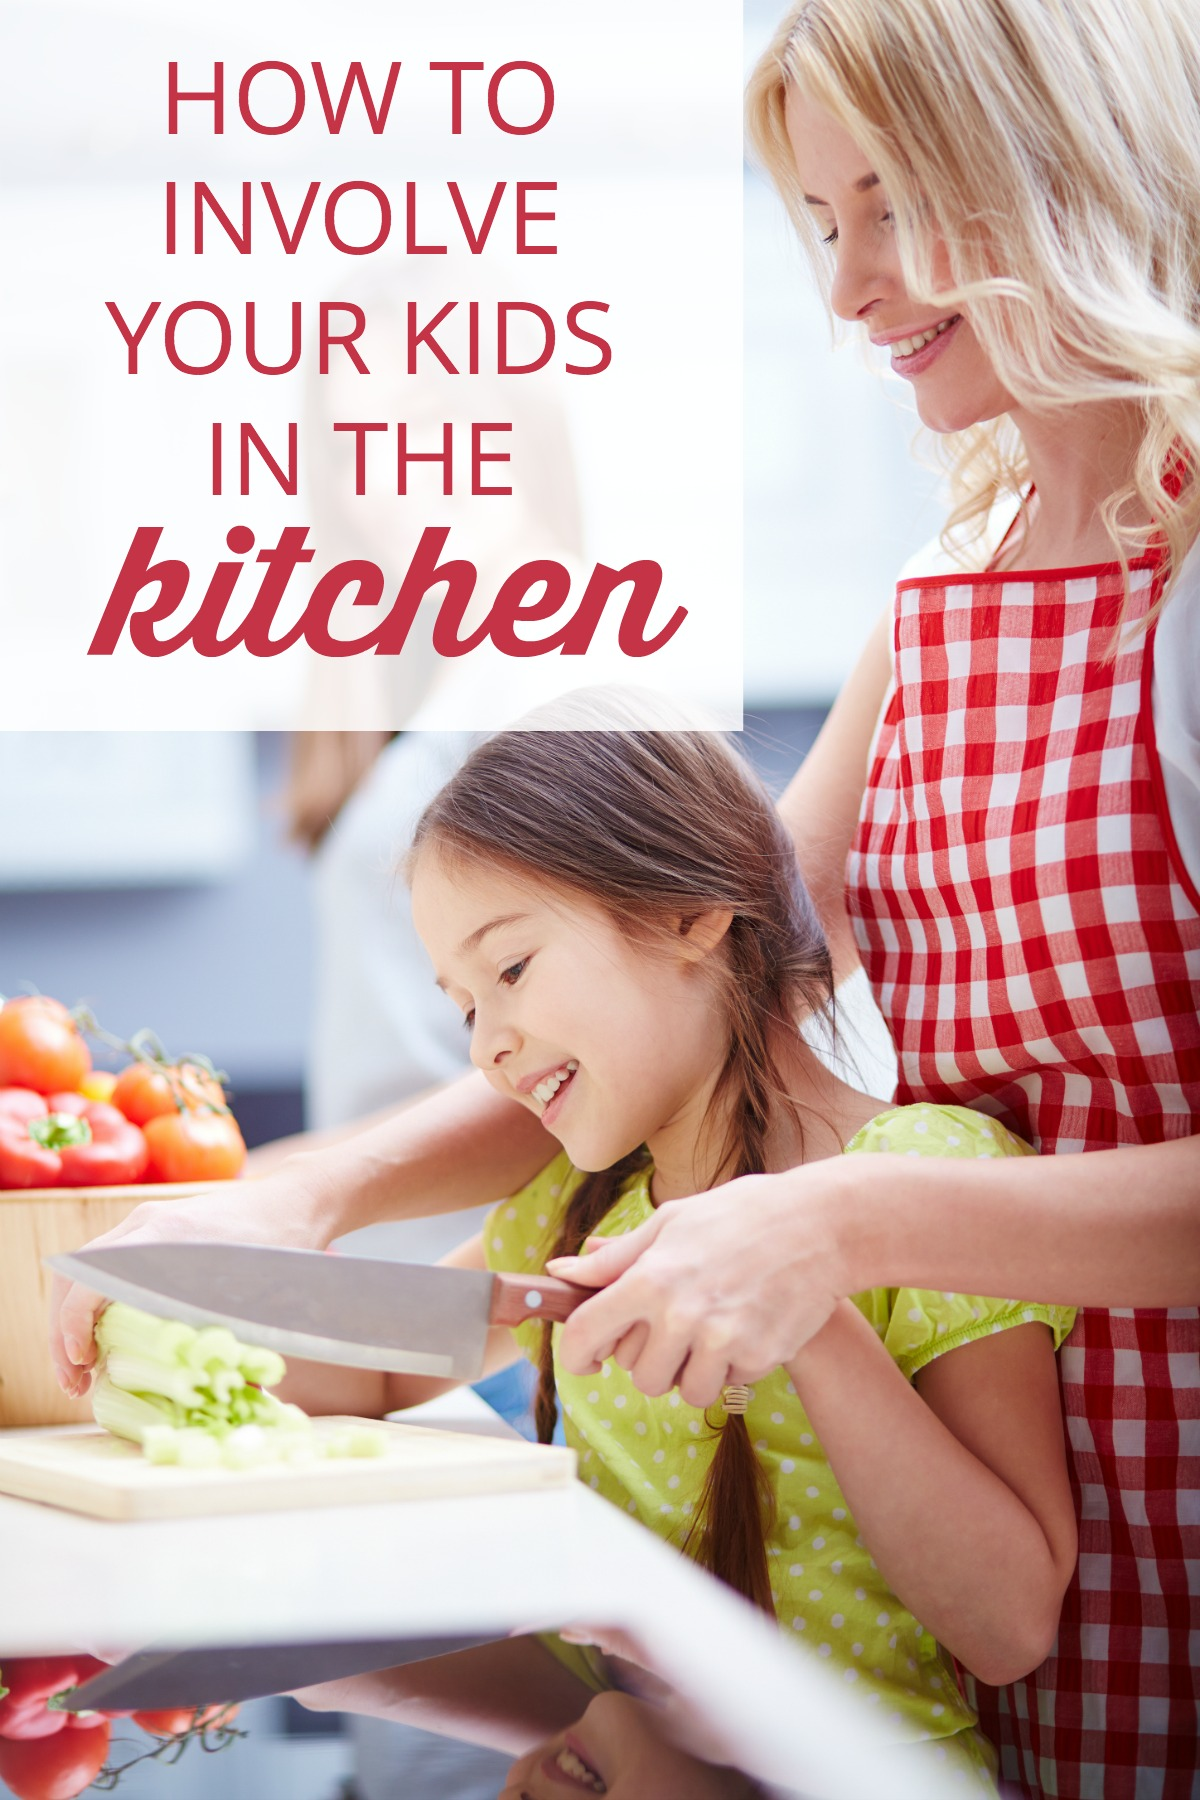 Does your child have an appetite for cooking? Here are some ideas and kid friendly recipes to give kids age-appropriate jobs in the family kitchen.